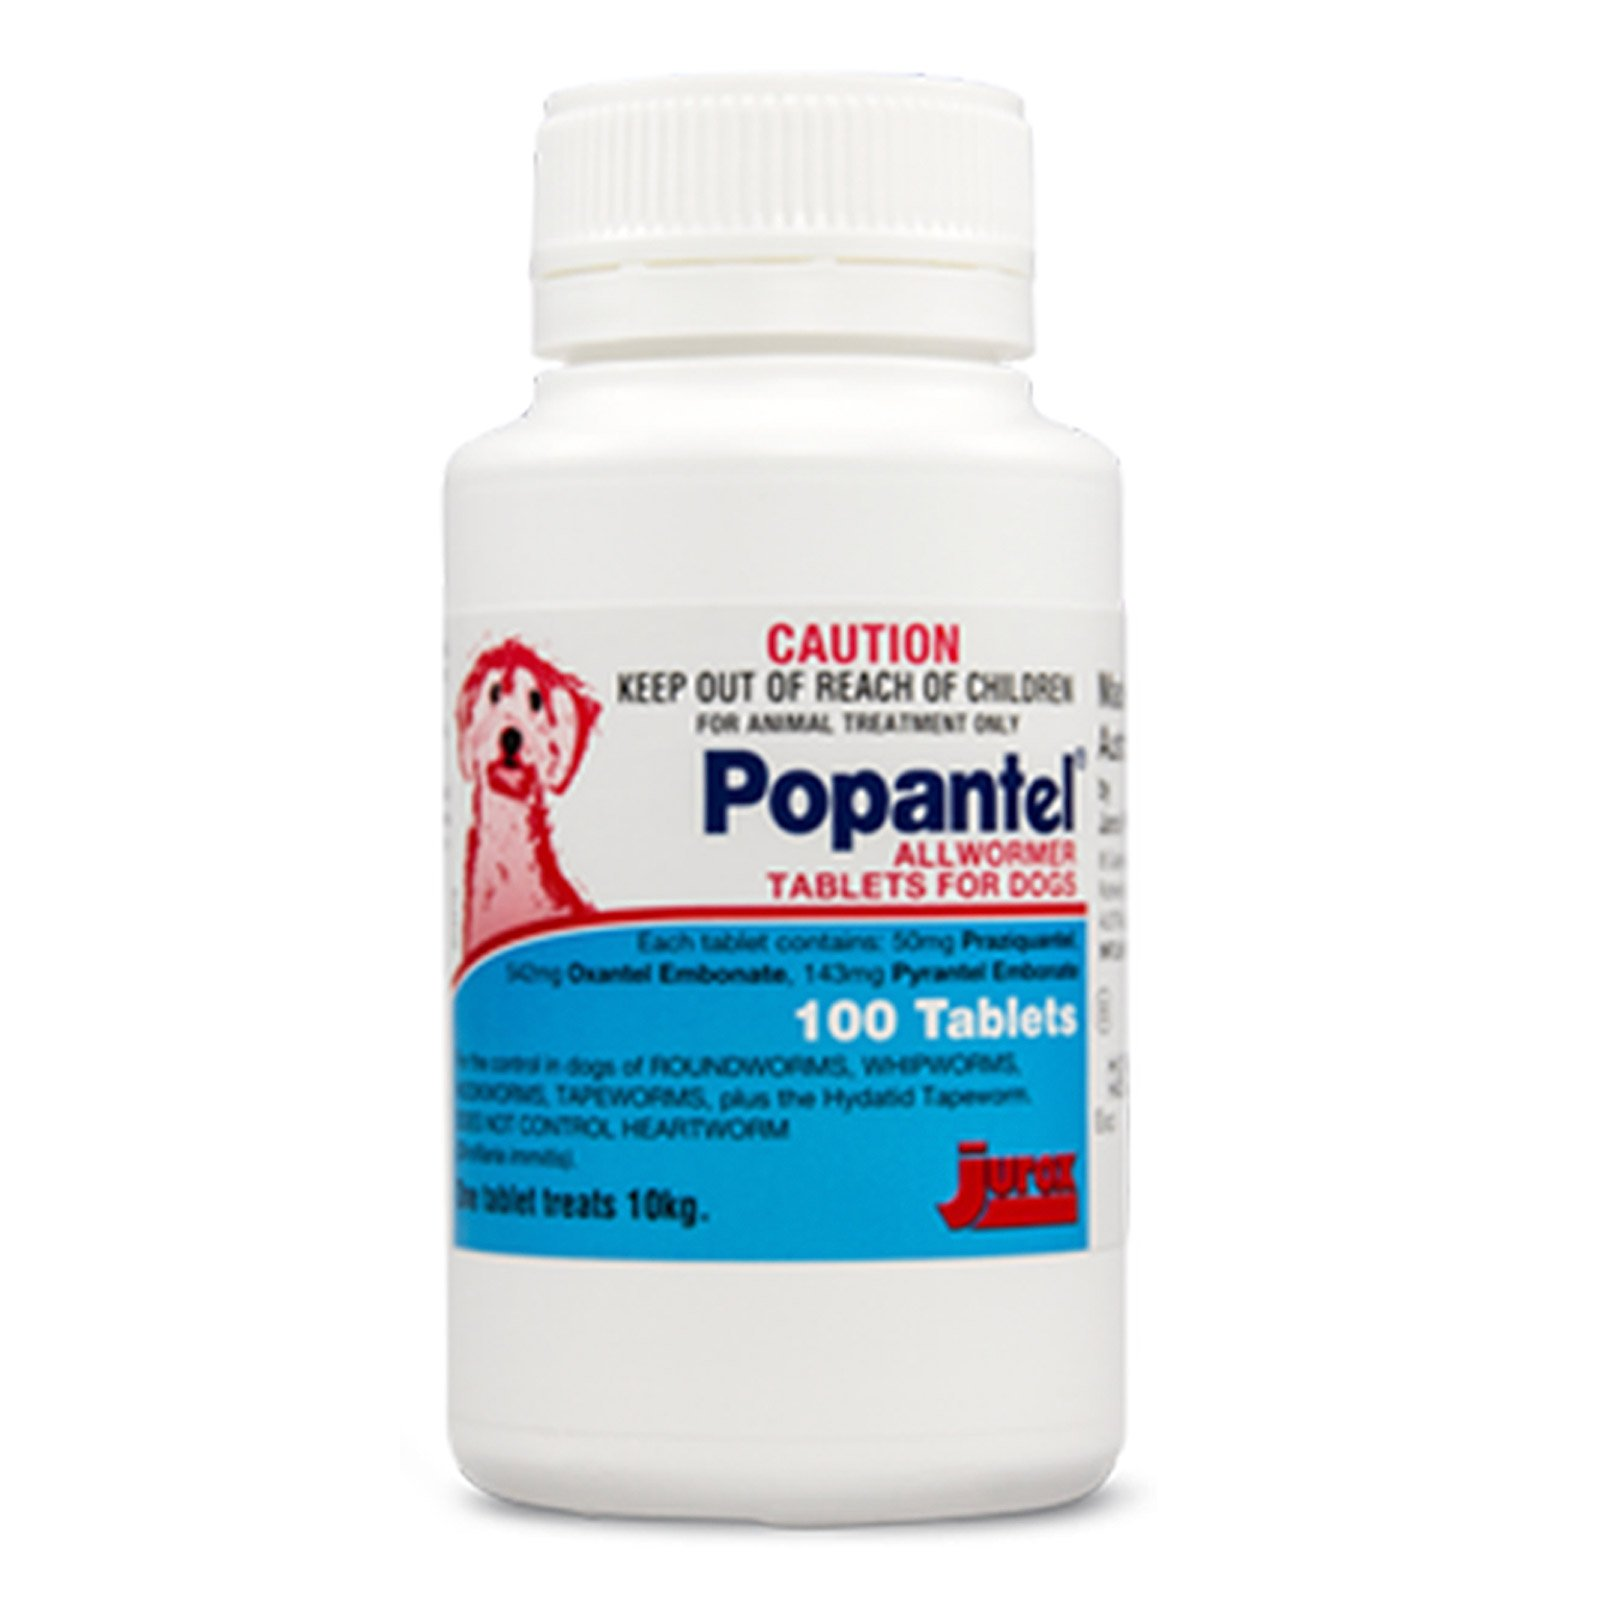 Popantel-For-Dogs-10-Kg.jpg